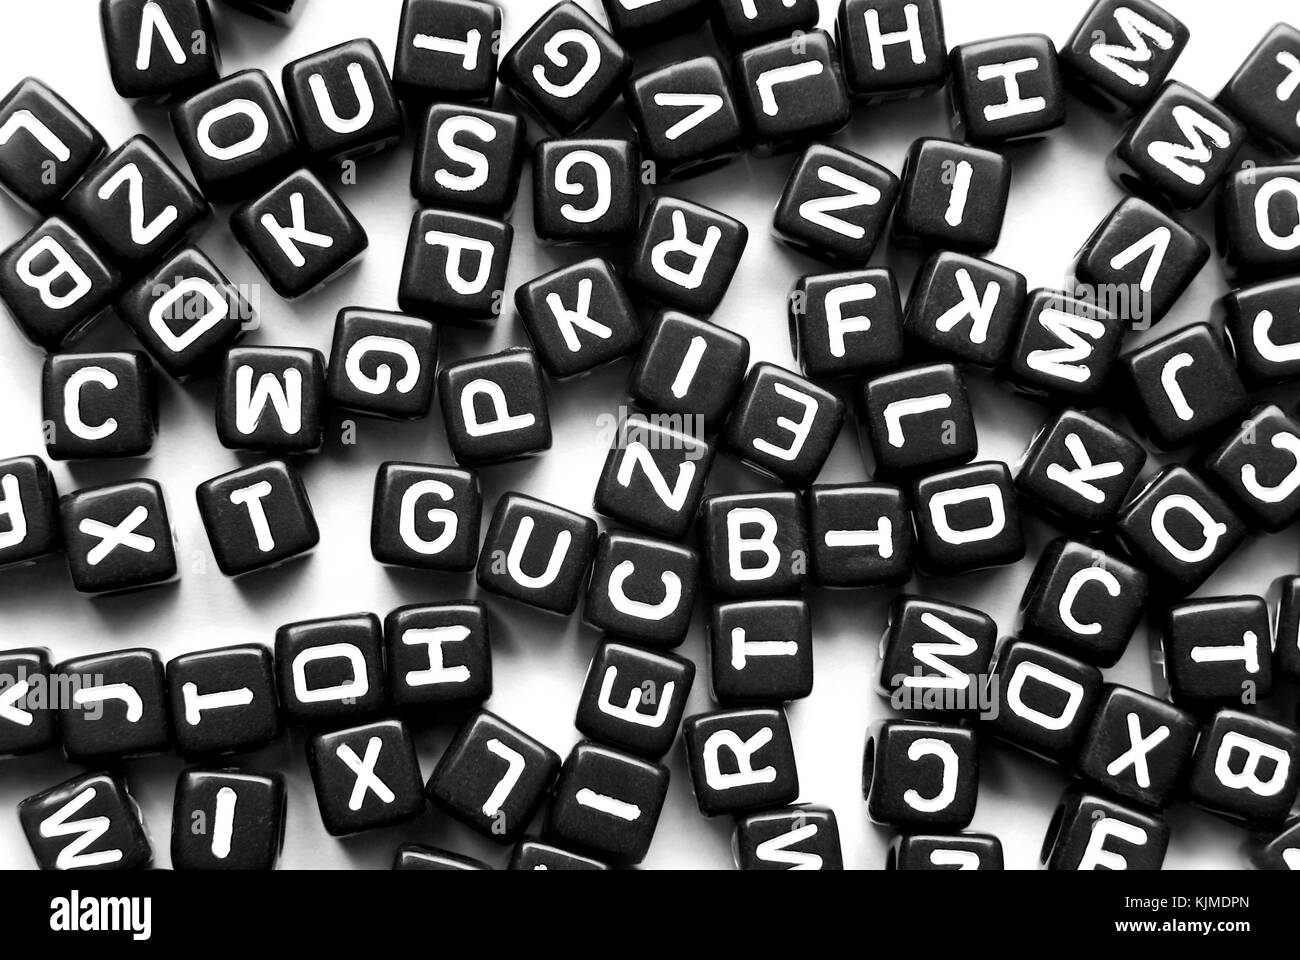 close up of the black letters background - Stock Image